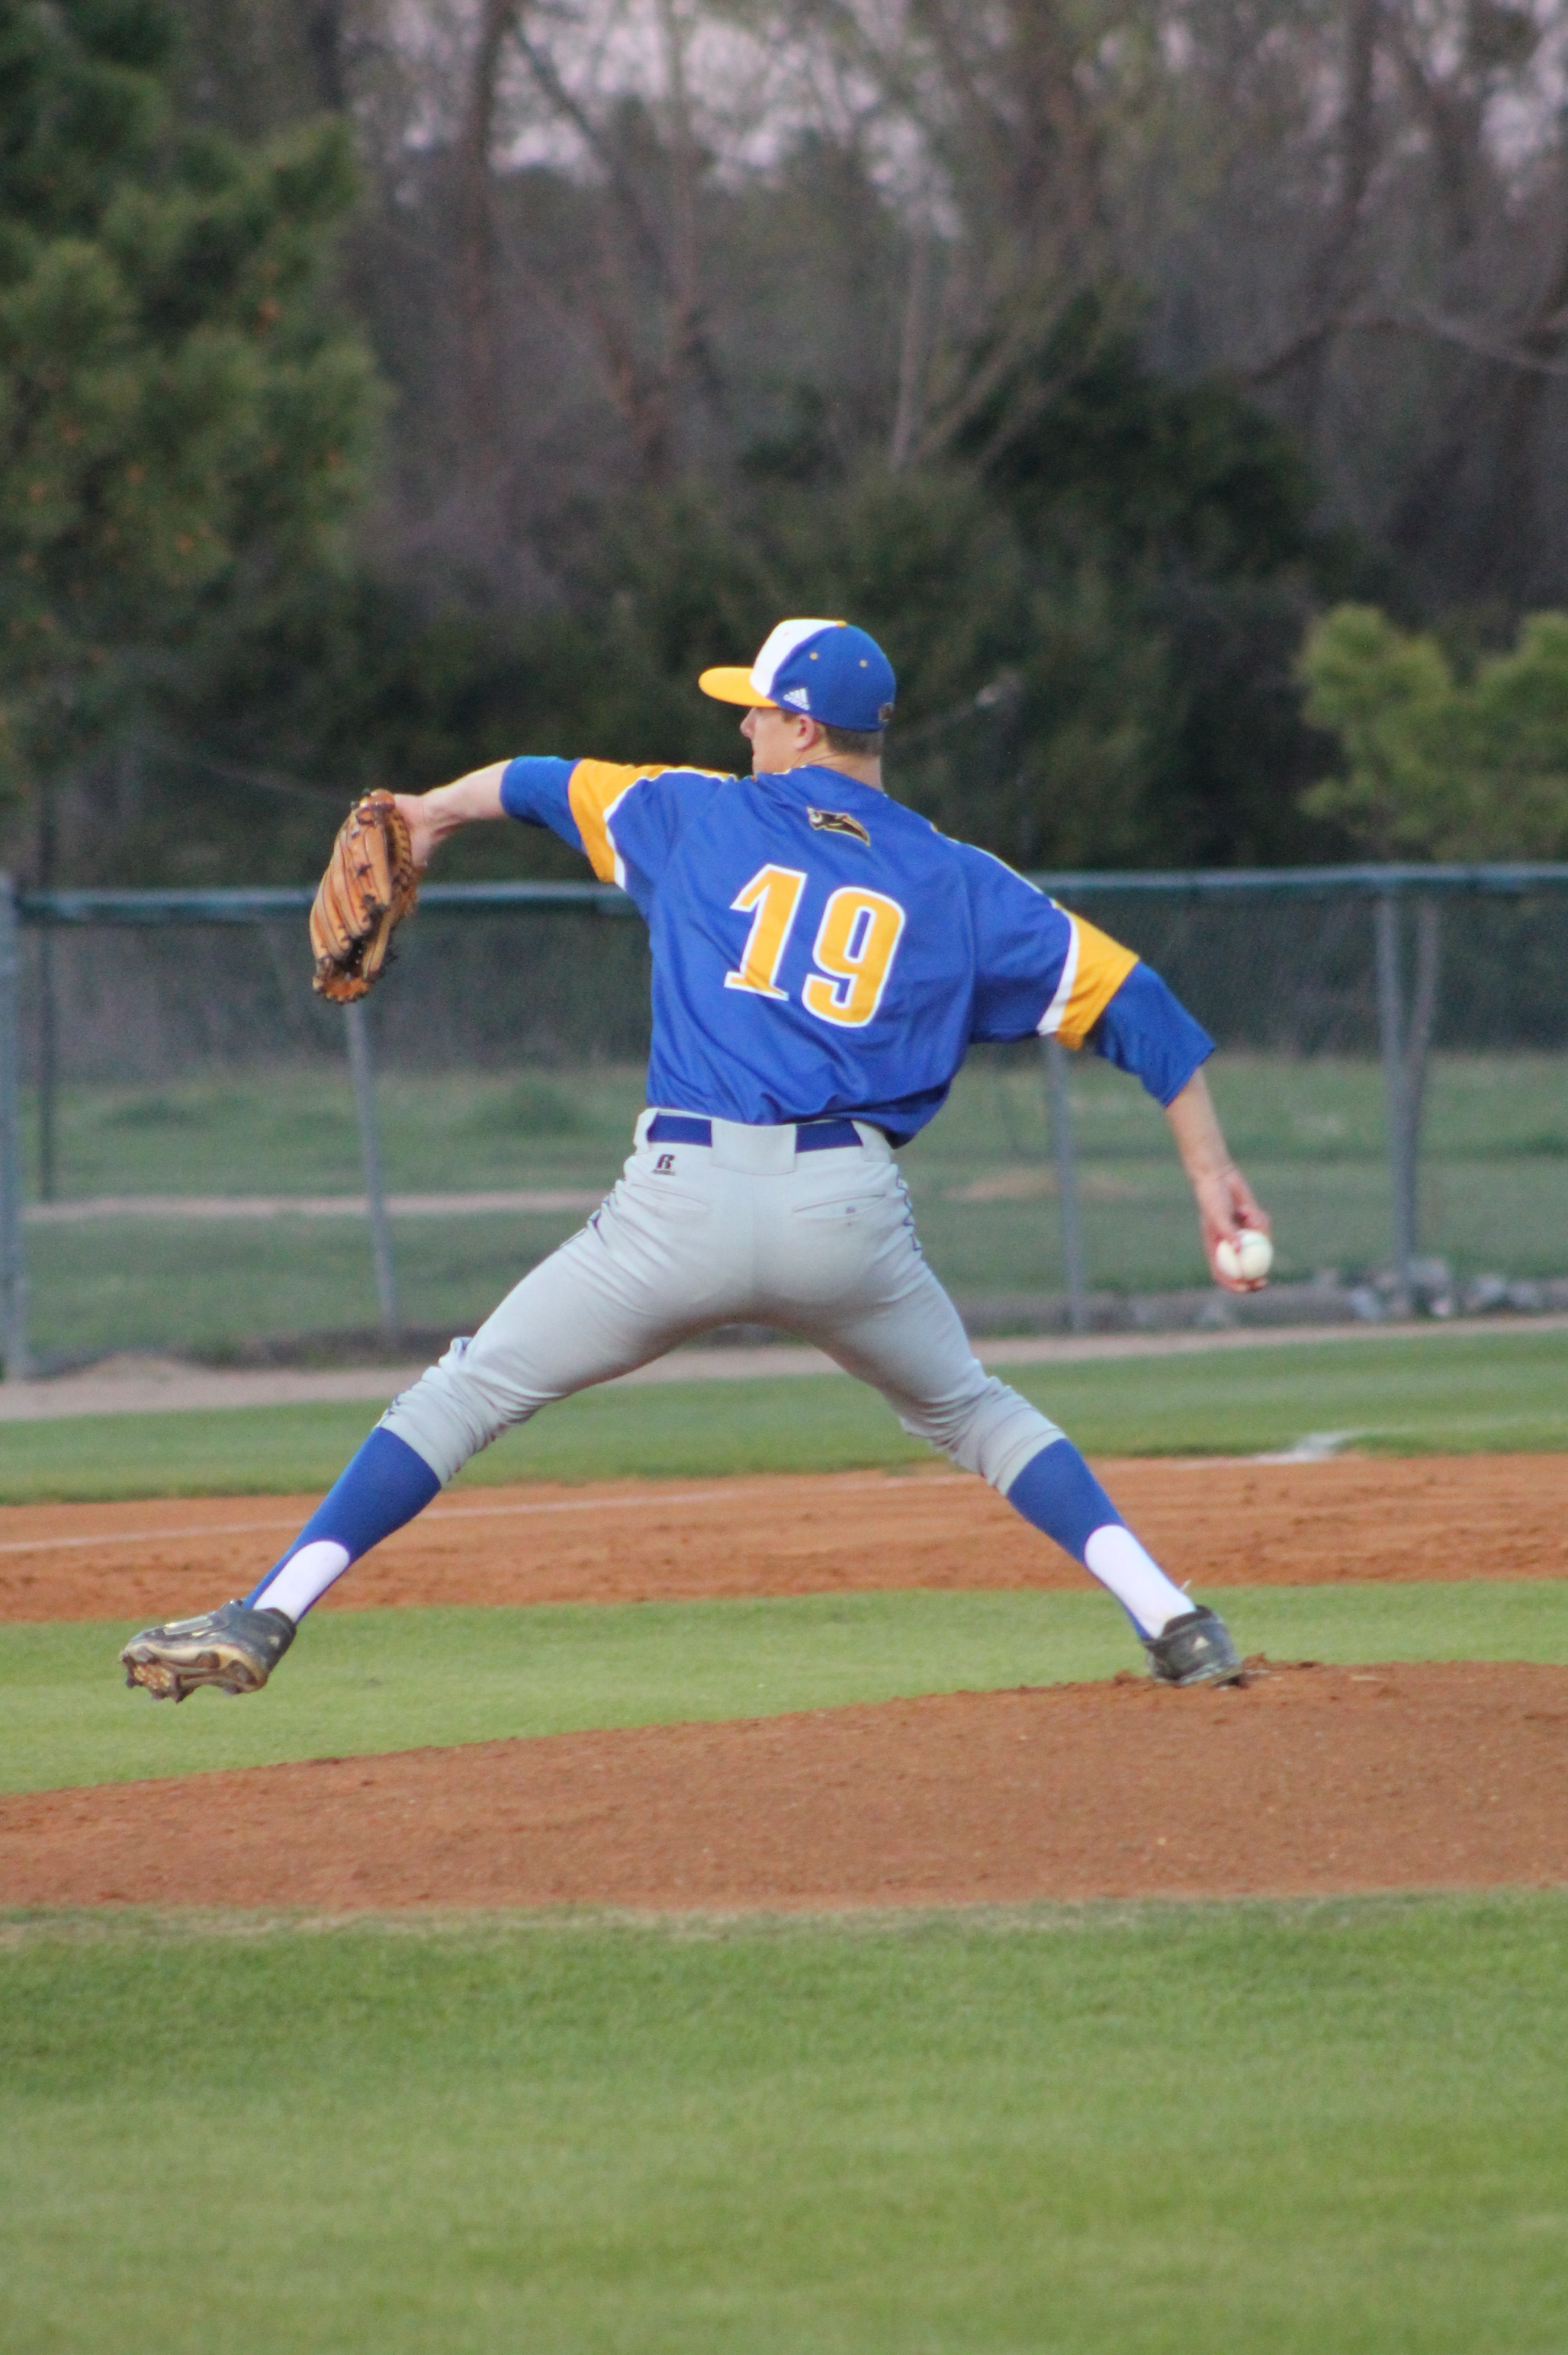 (Photo by Adam Routon) Matt Gibbons about to deliver a pitch Monday night